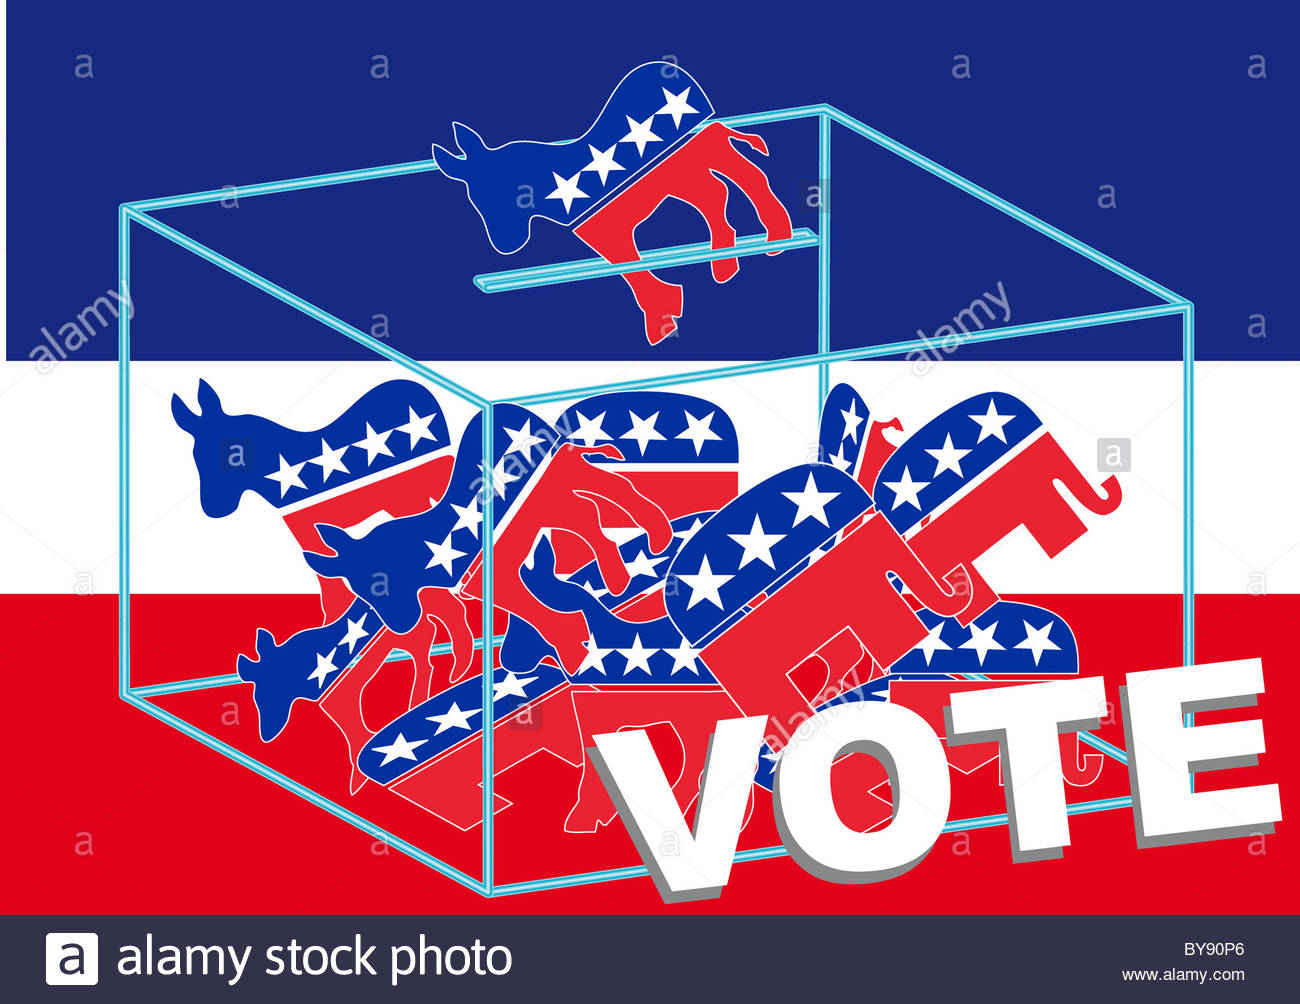 Vote Democratic over a blue, white and red background - Stock Image